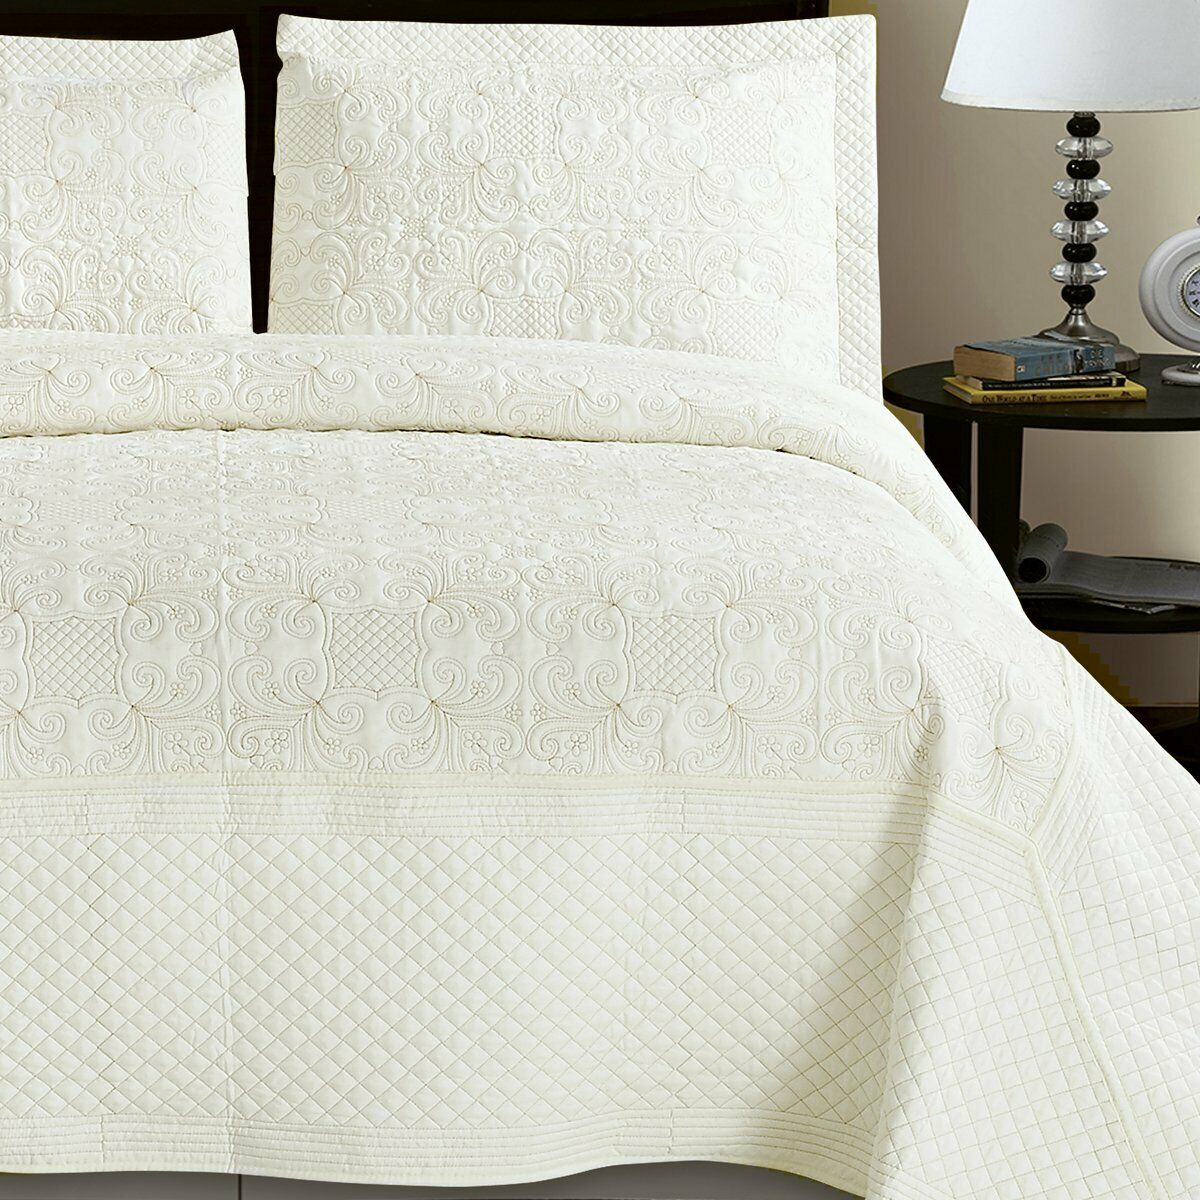 New Luxury Cream   Gold Embroiderot Quilted Bedspread Throw Elegant